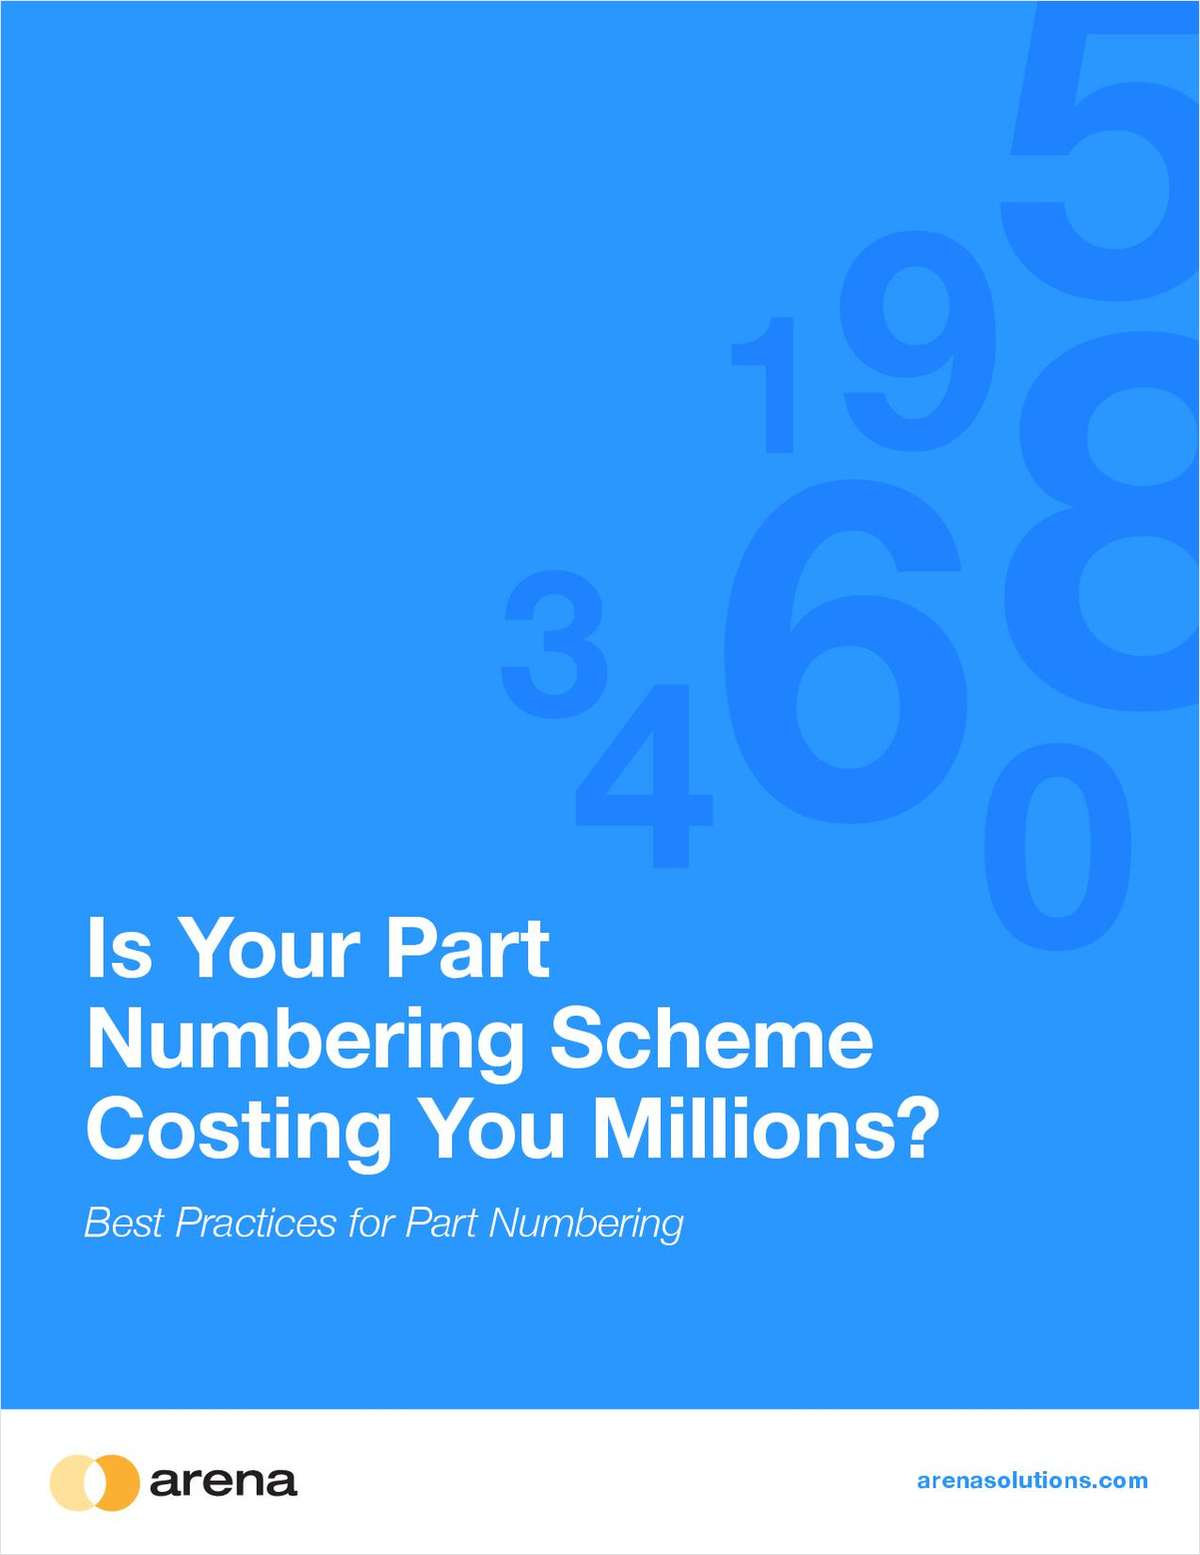 Is Your Part Numbering Scheme Costing You Millions?